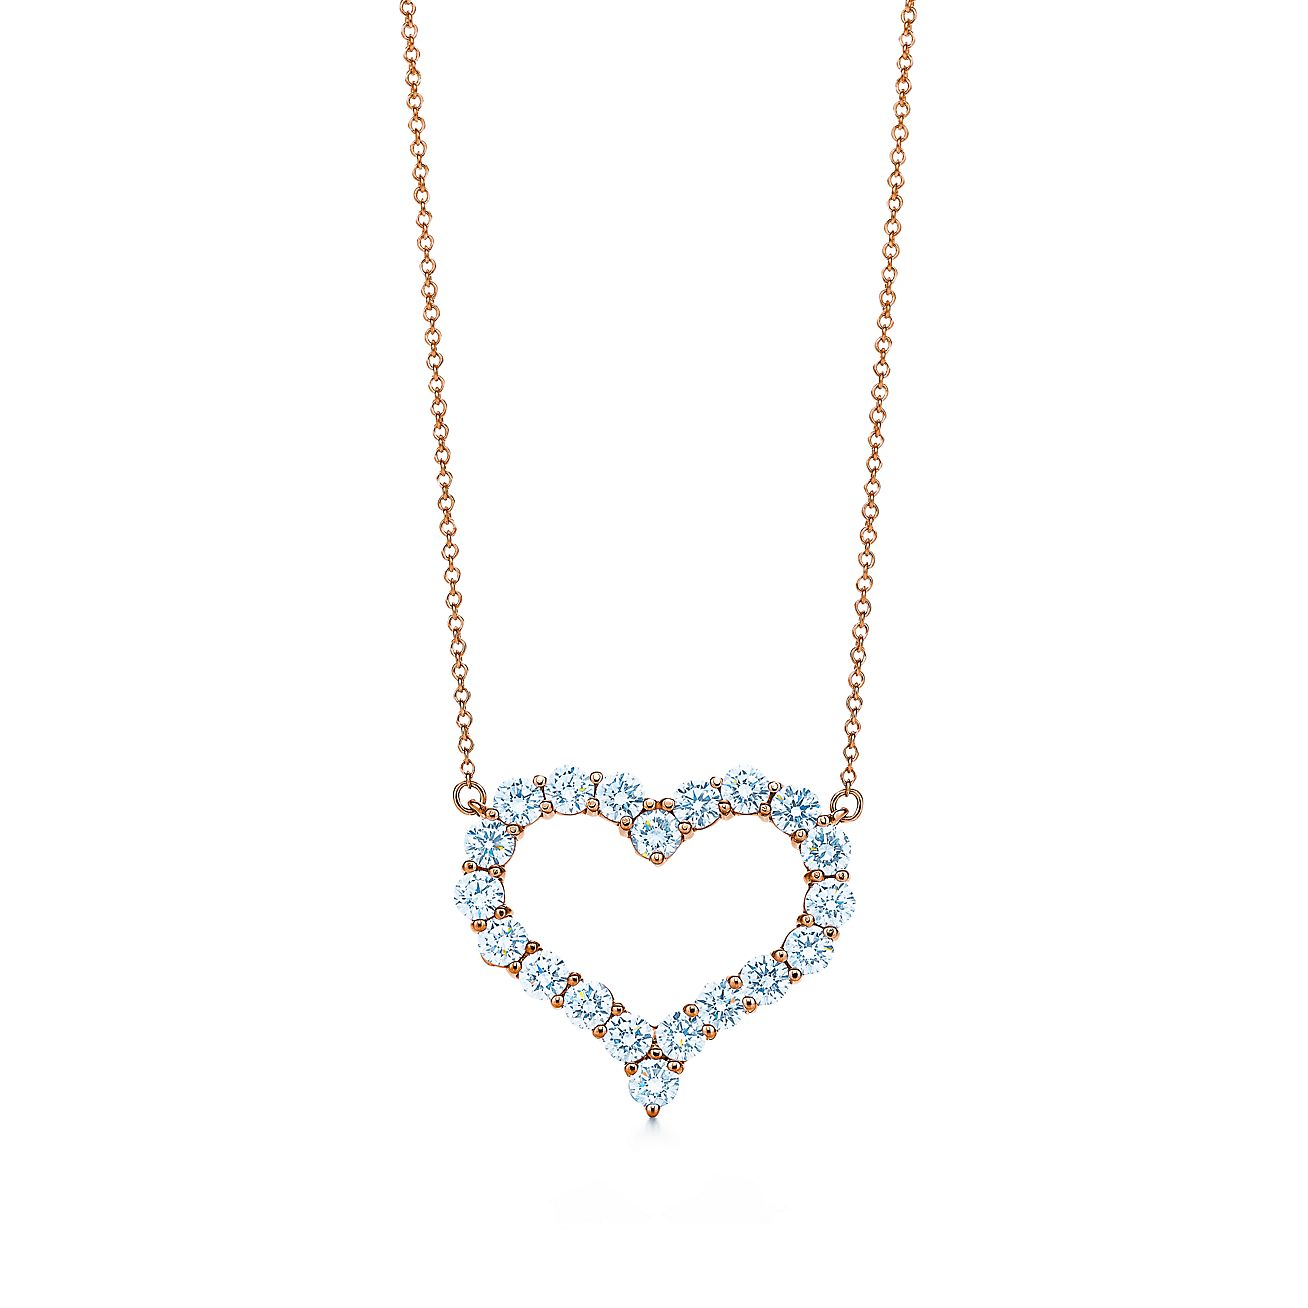 Tiffany Hearts pendant in 18k rose gold with diamonds Tiffany & Co.